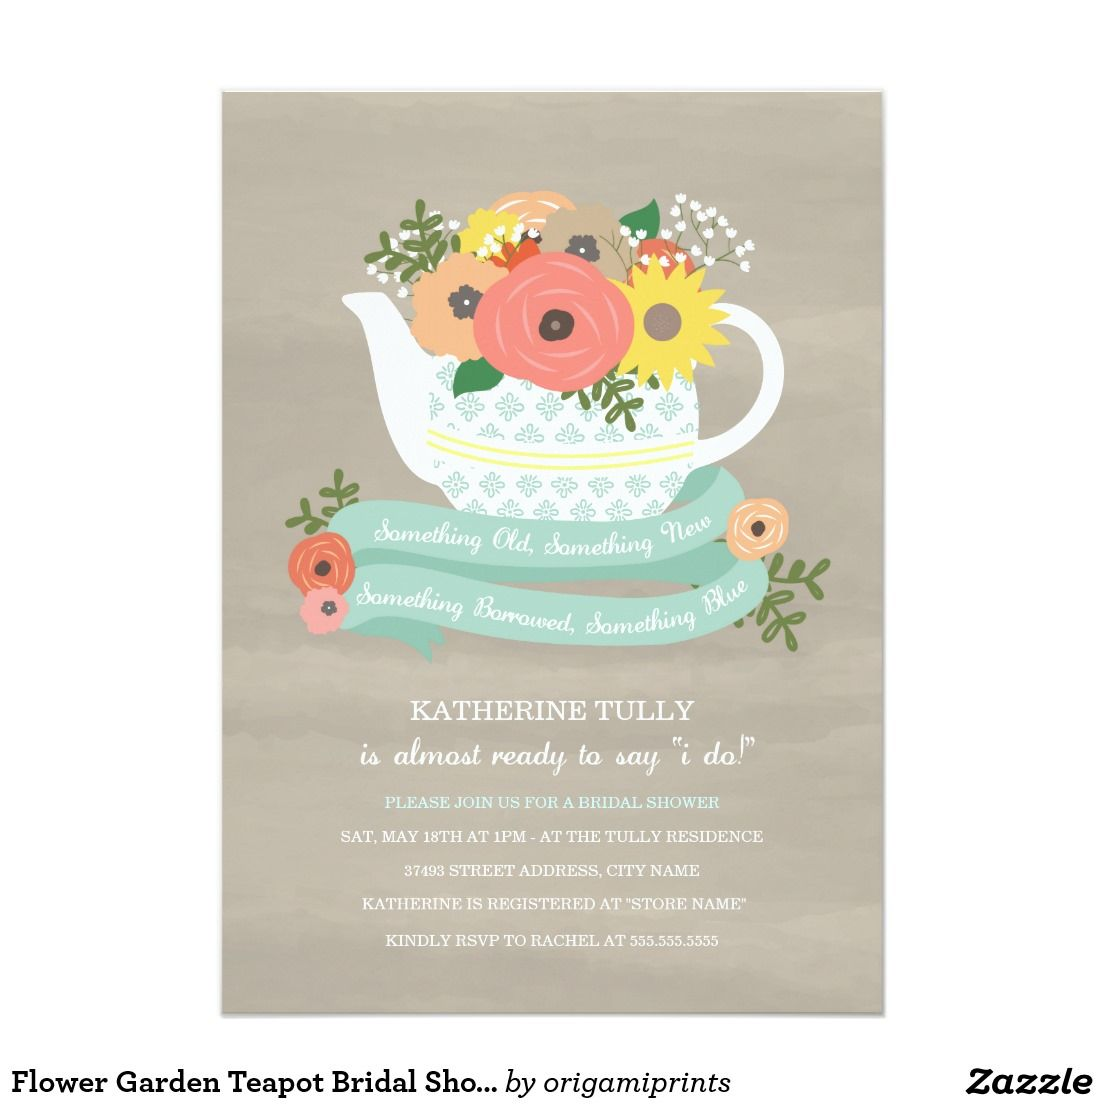 Flower garden teapot bridal shower invitation shower invitations flower garden teapot bridal shower invitation filmwisefo Gallery